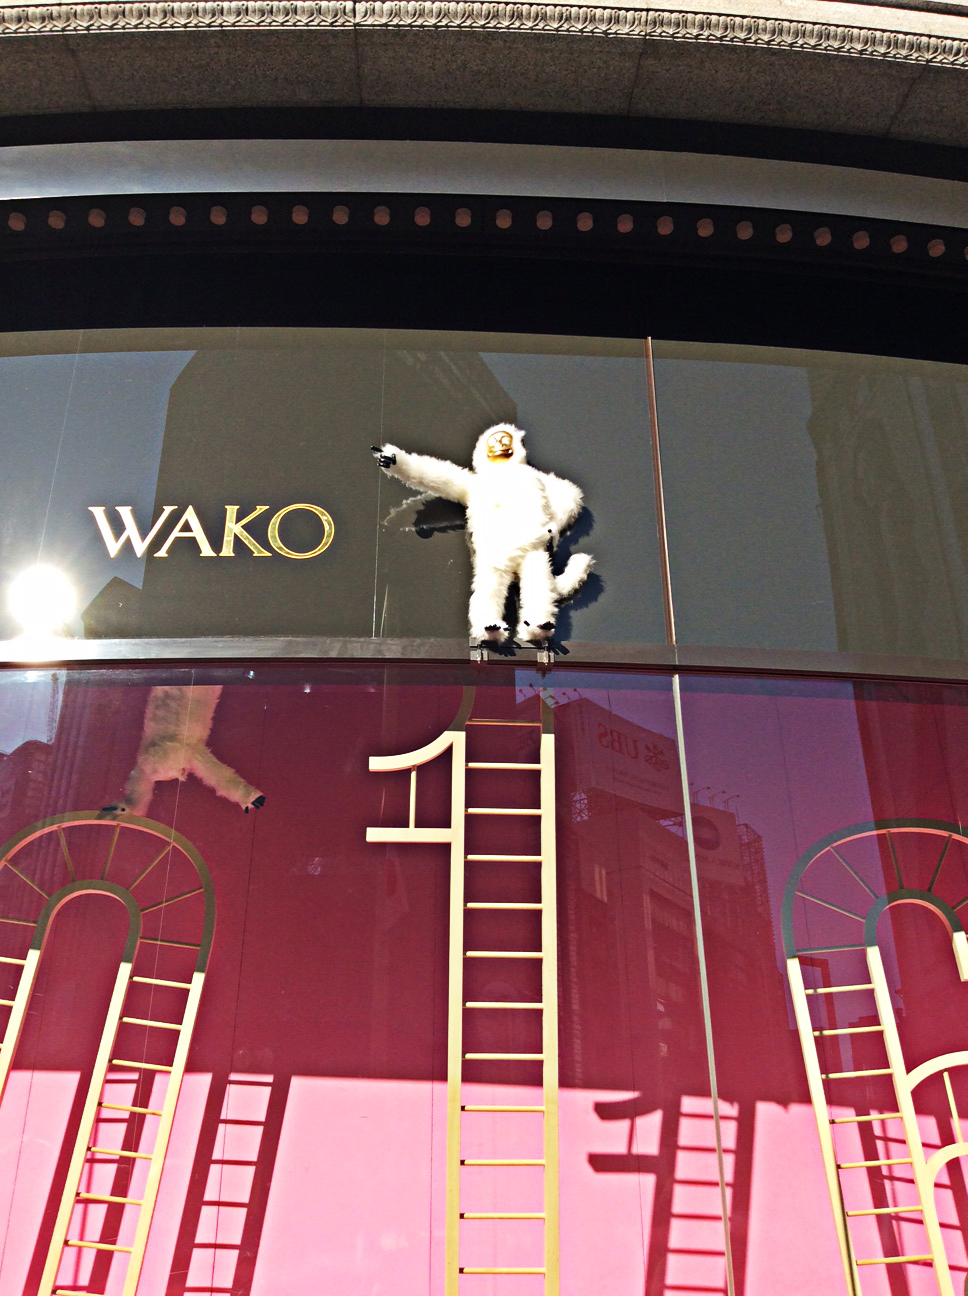 The name Wako in gold lettering against grey is seen over the top of the curved display window. A gold-faced white monkey stands pointing beside it. Inside, against a purple-pink backdrop golden ladder arches bearing acrobatic white monkeys decorate the Wako window.